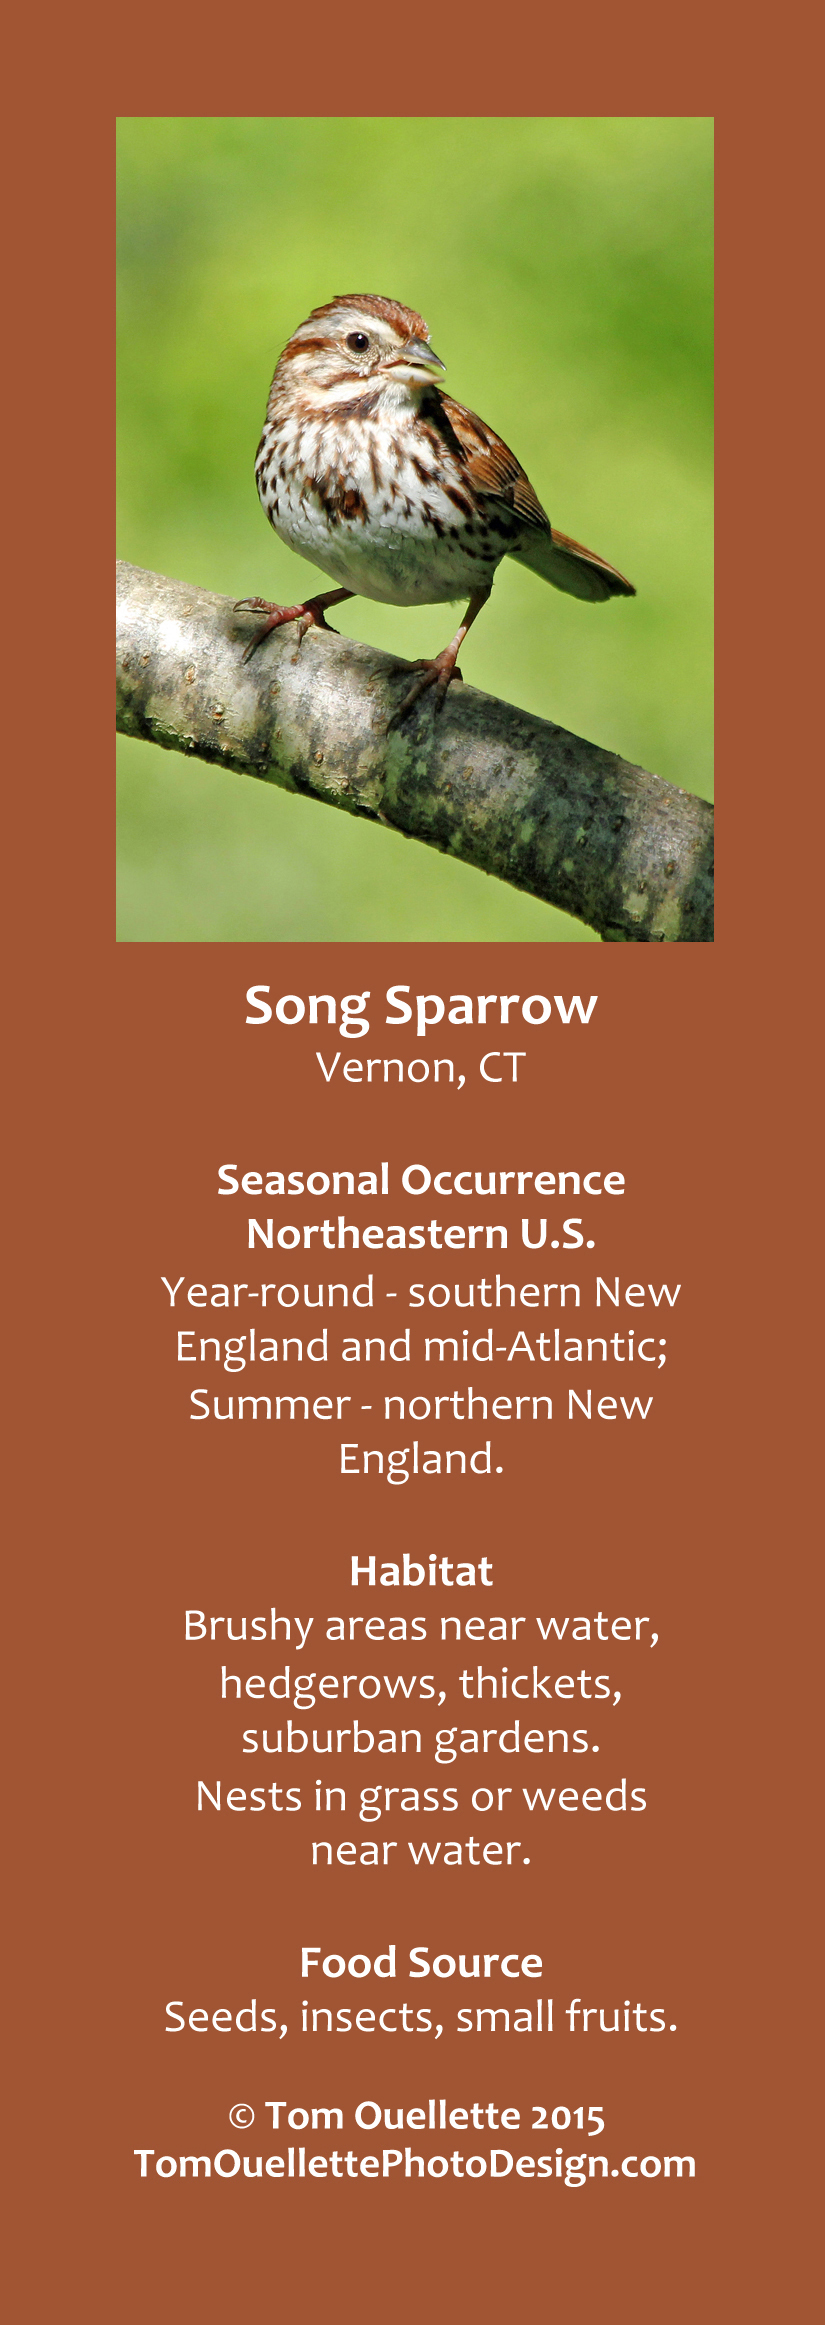 13 SS A12 Song Sparrow.jpg